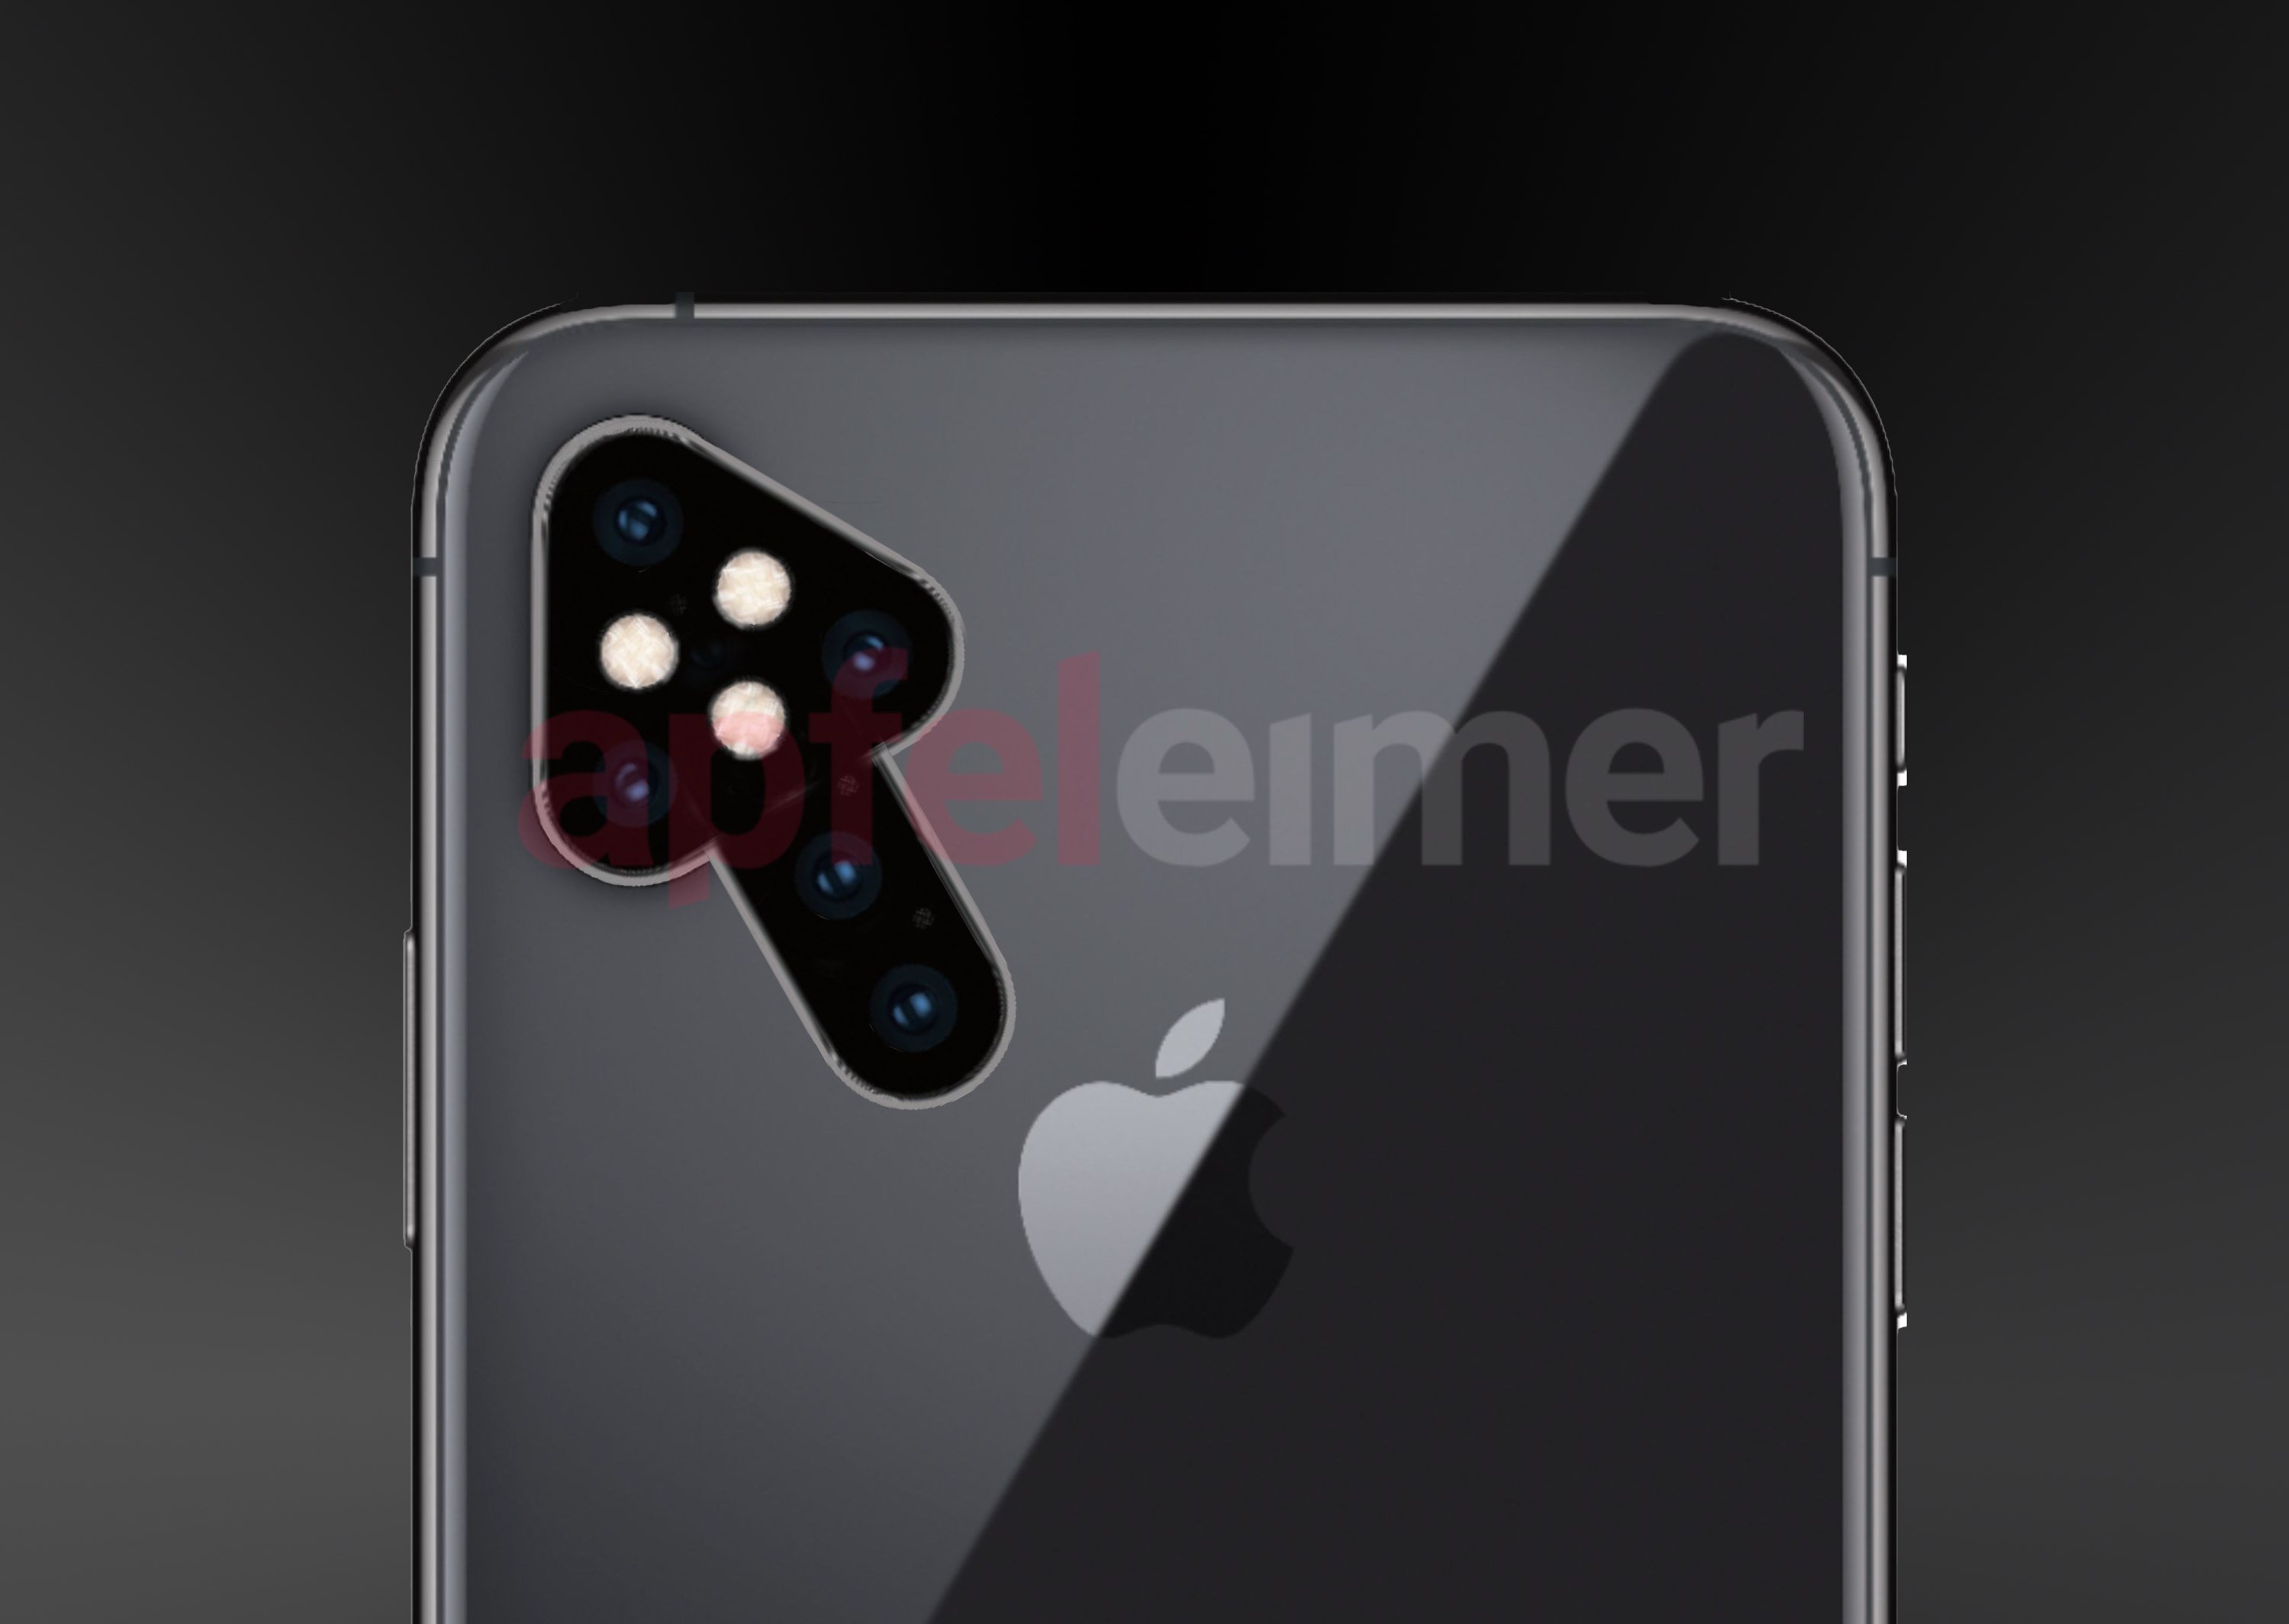 Upvote the new iPhone 1